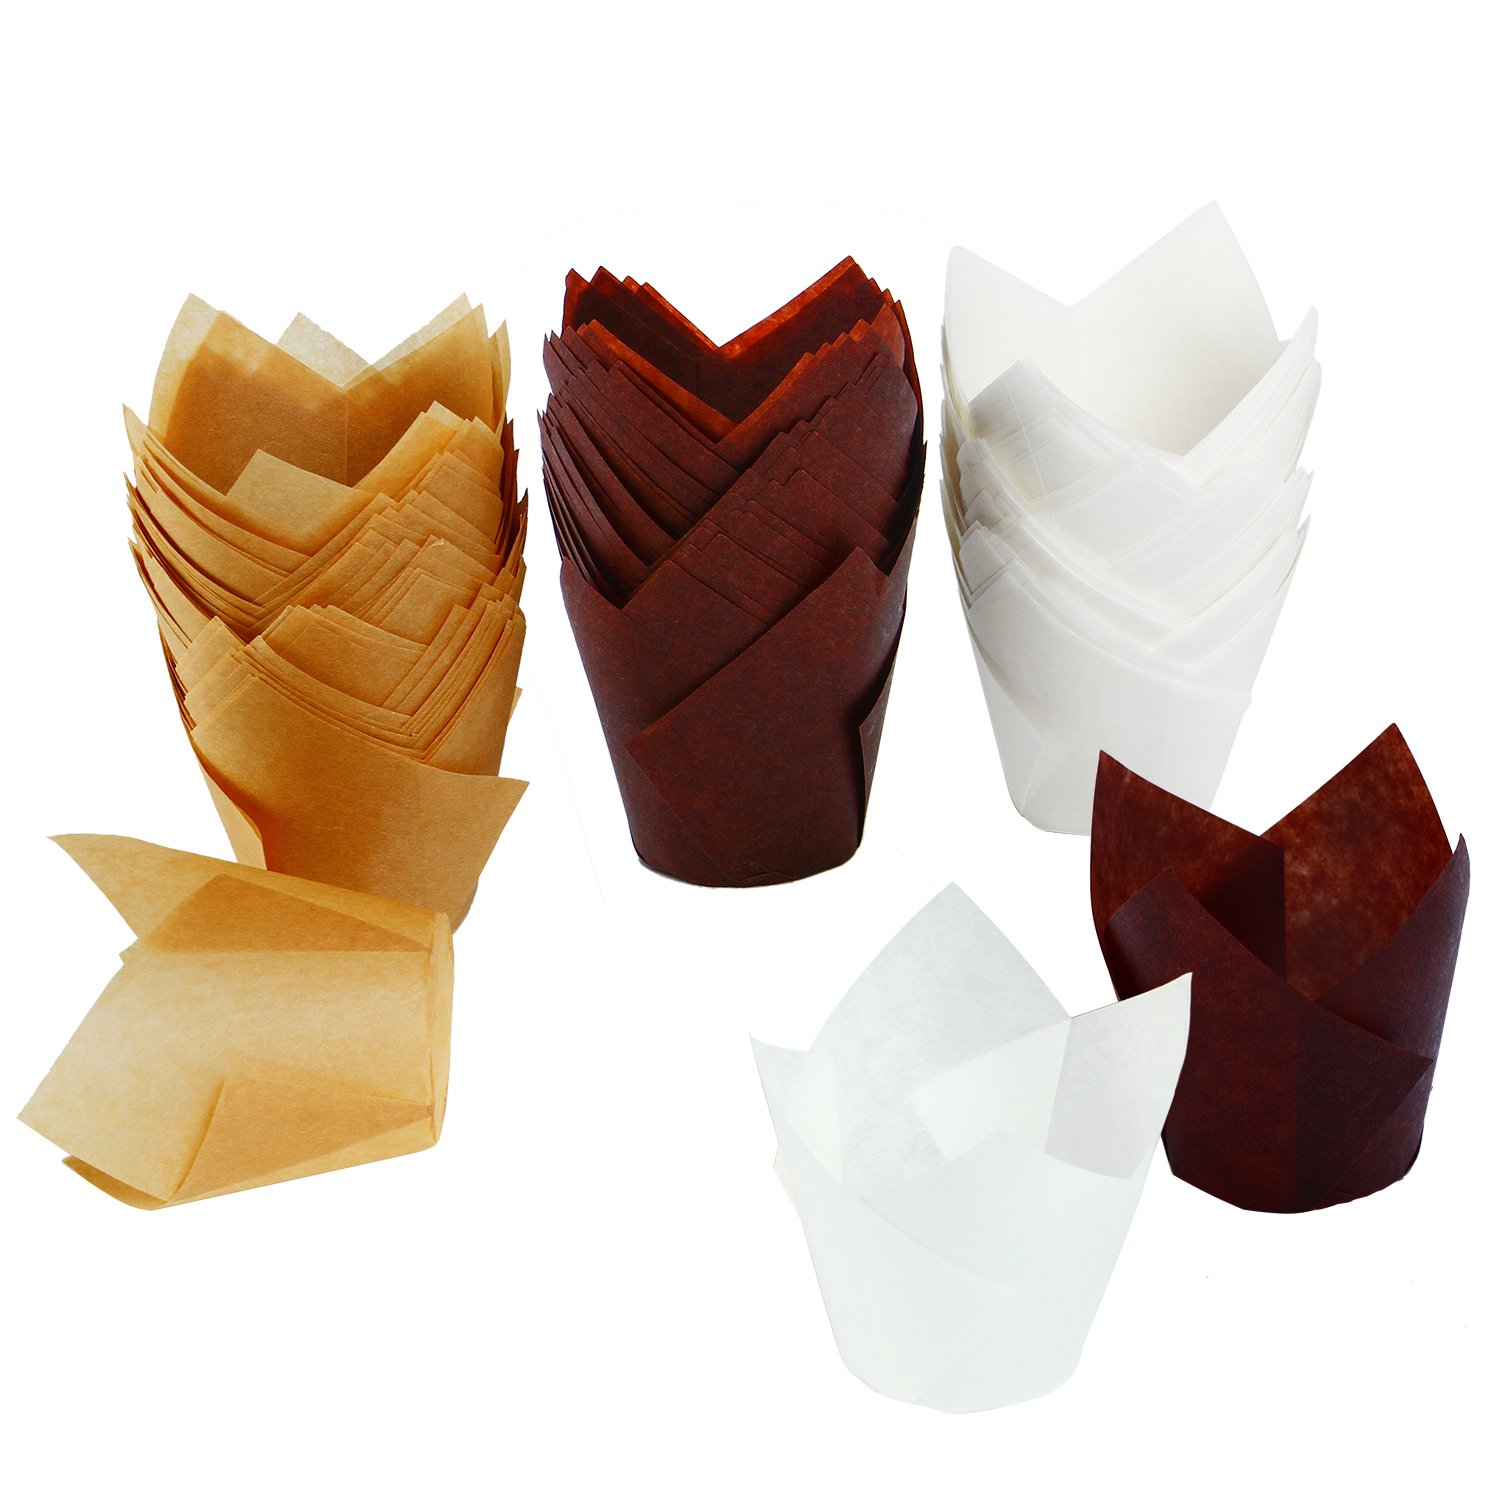 Resinta 150 Pieces Tulip Baking Paper Cups Cupcake Muffin Liners Wrappers, Brown, Natural and White by Resinta